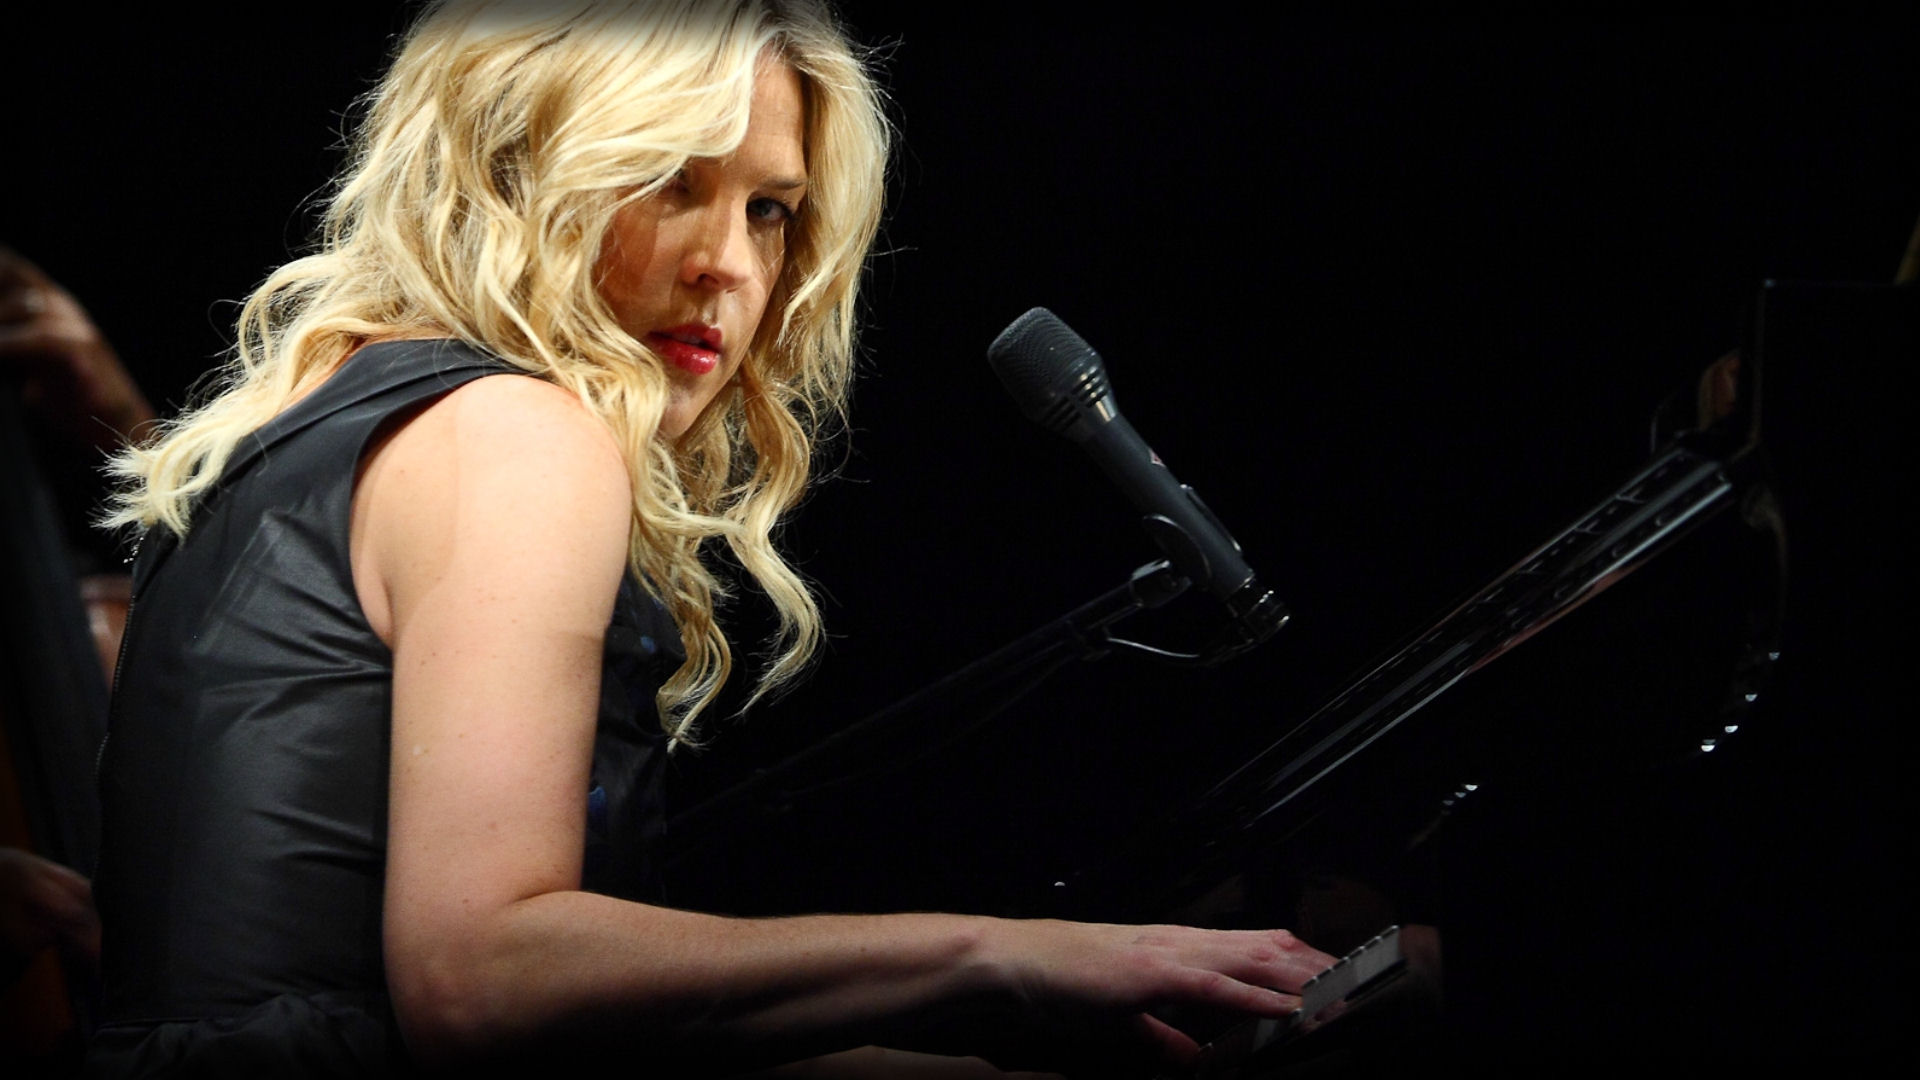 the musical career of diana krall Find album reviews, stream songs, credits and award information for the very best of diana krall - diana krall on allmusic - 2007 - the very best of diana krall.